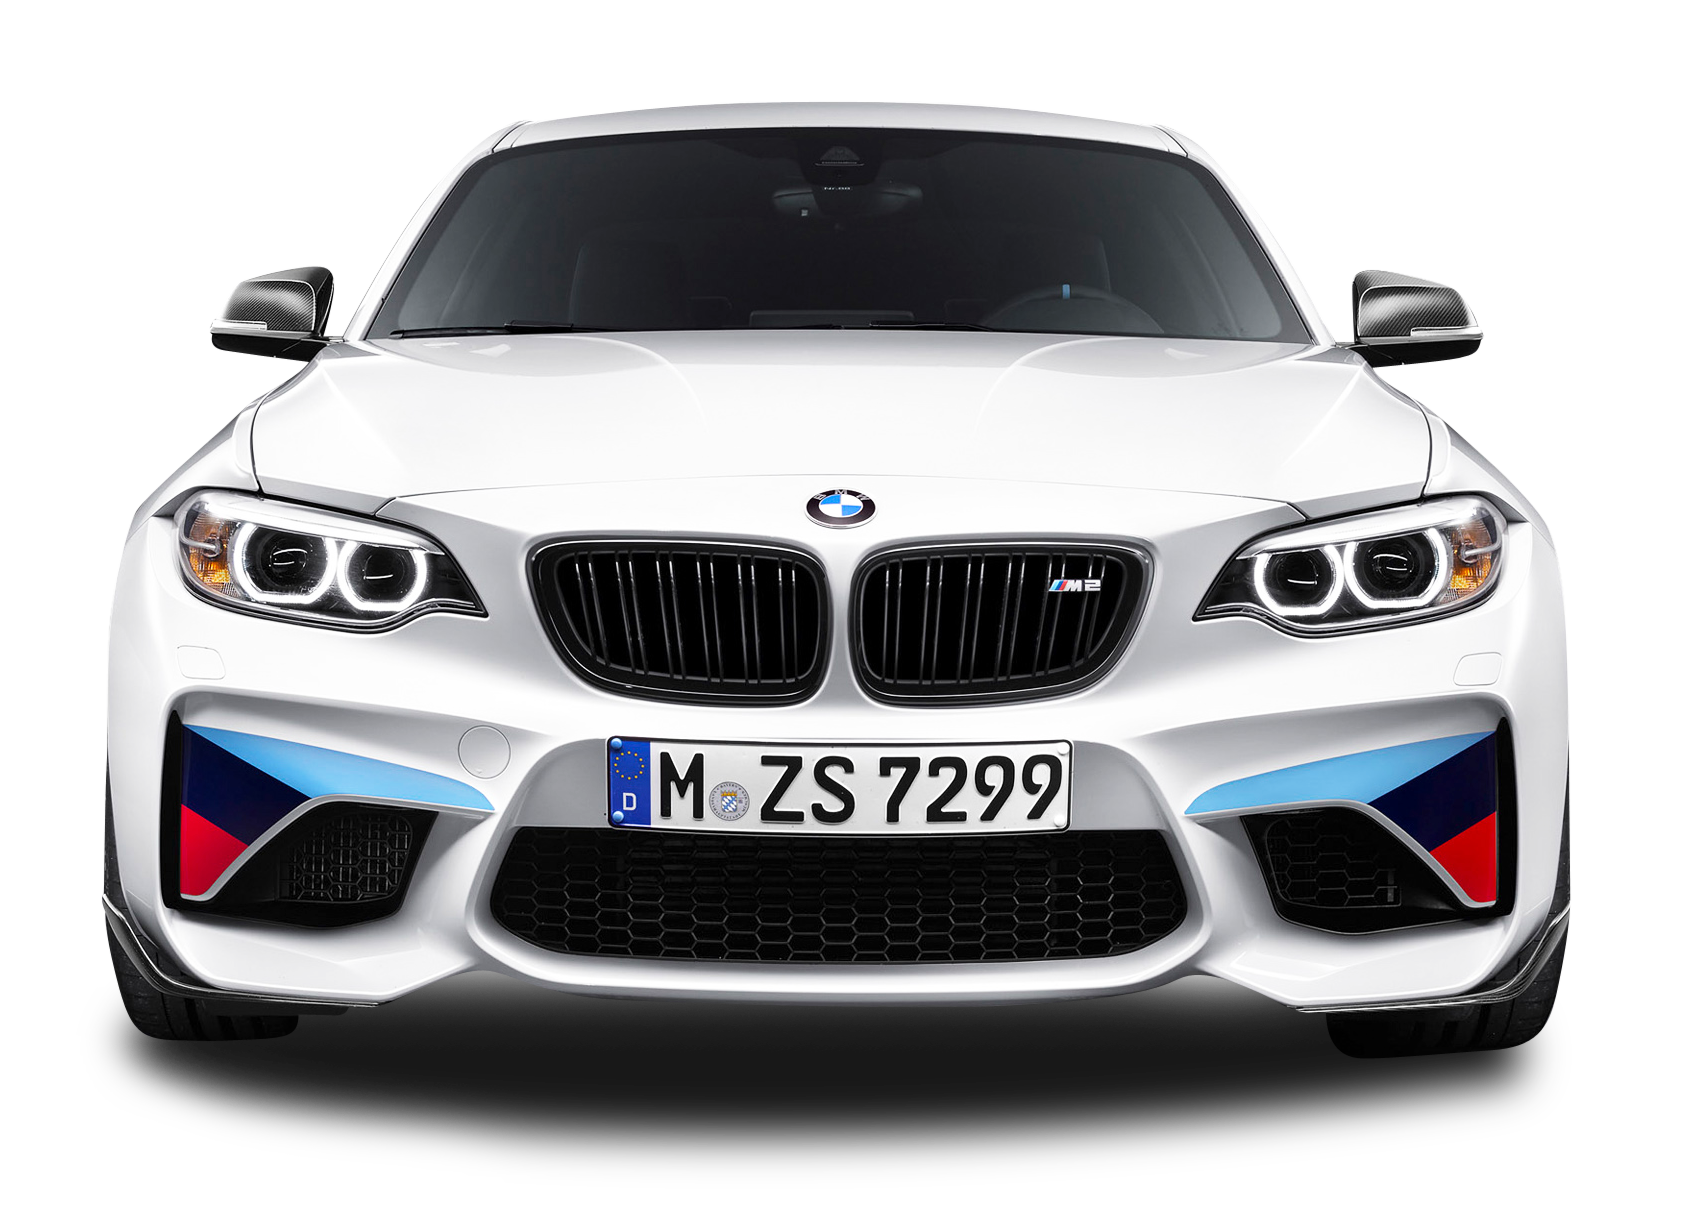 2016 bmw png. Car front transparent pictures